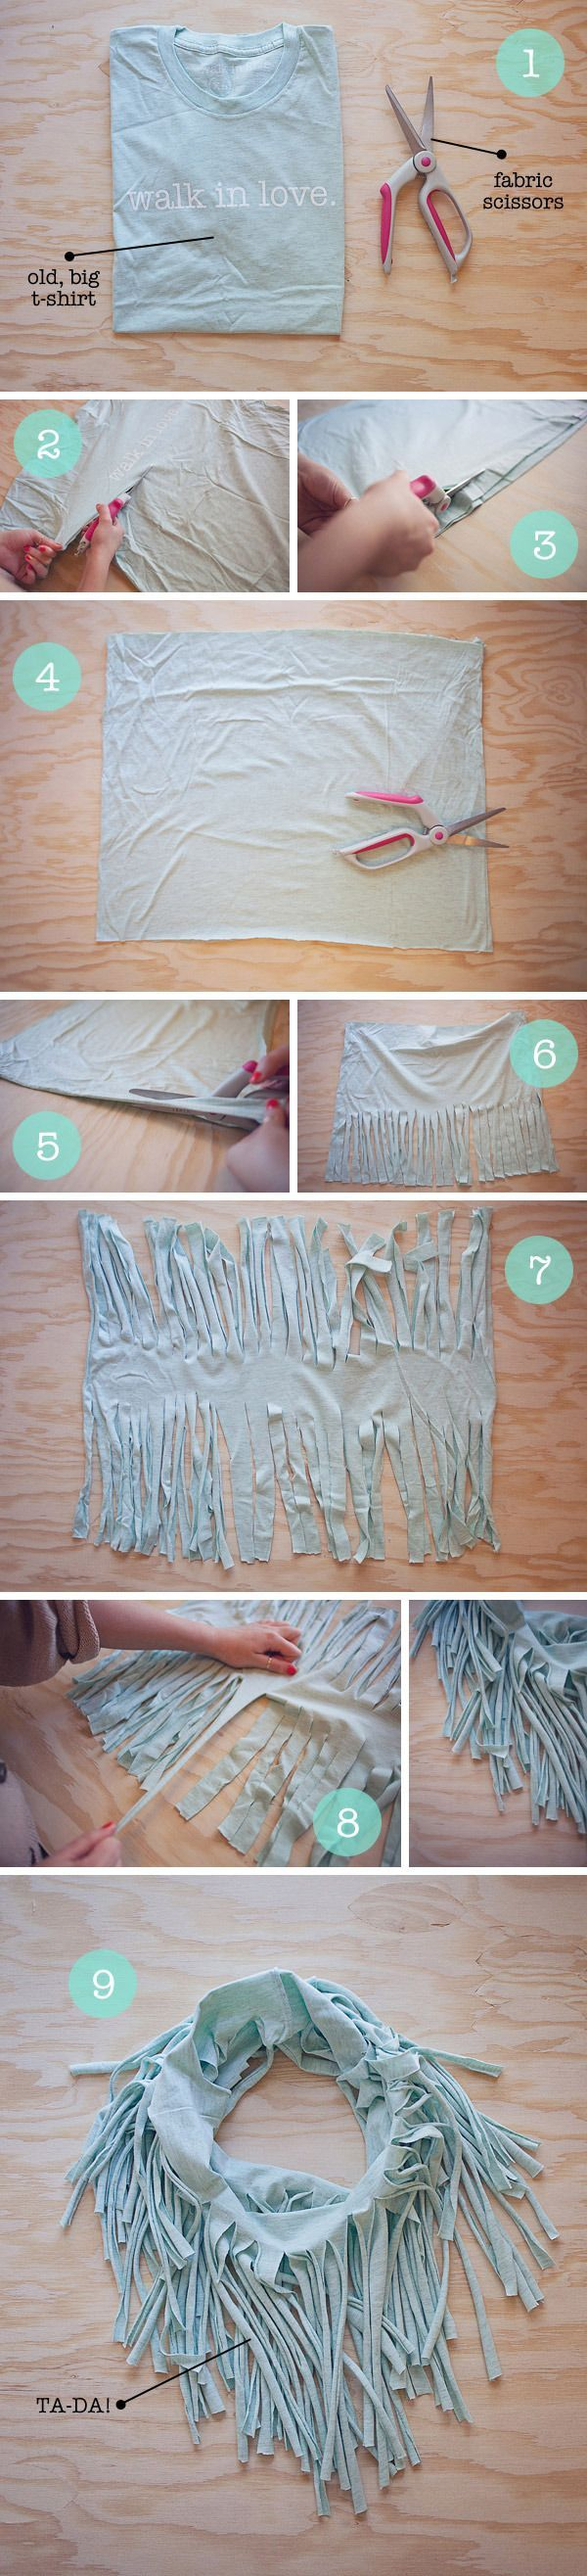 Everyone's got old t-shirts that are ignored in the wardrobe, but you can now turn an old t-shirt into an amazing scarf!